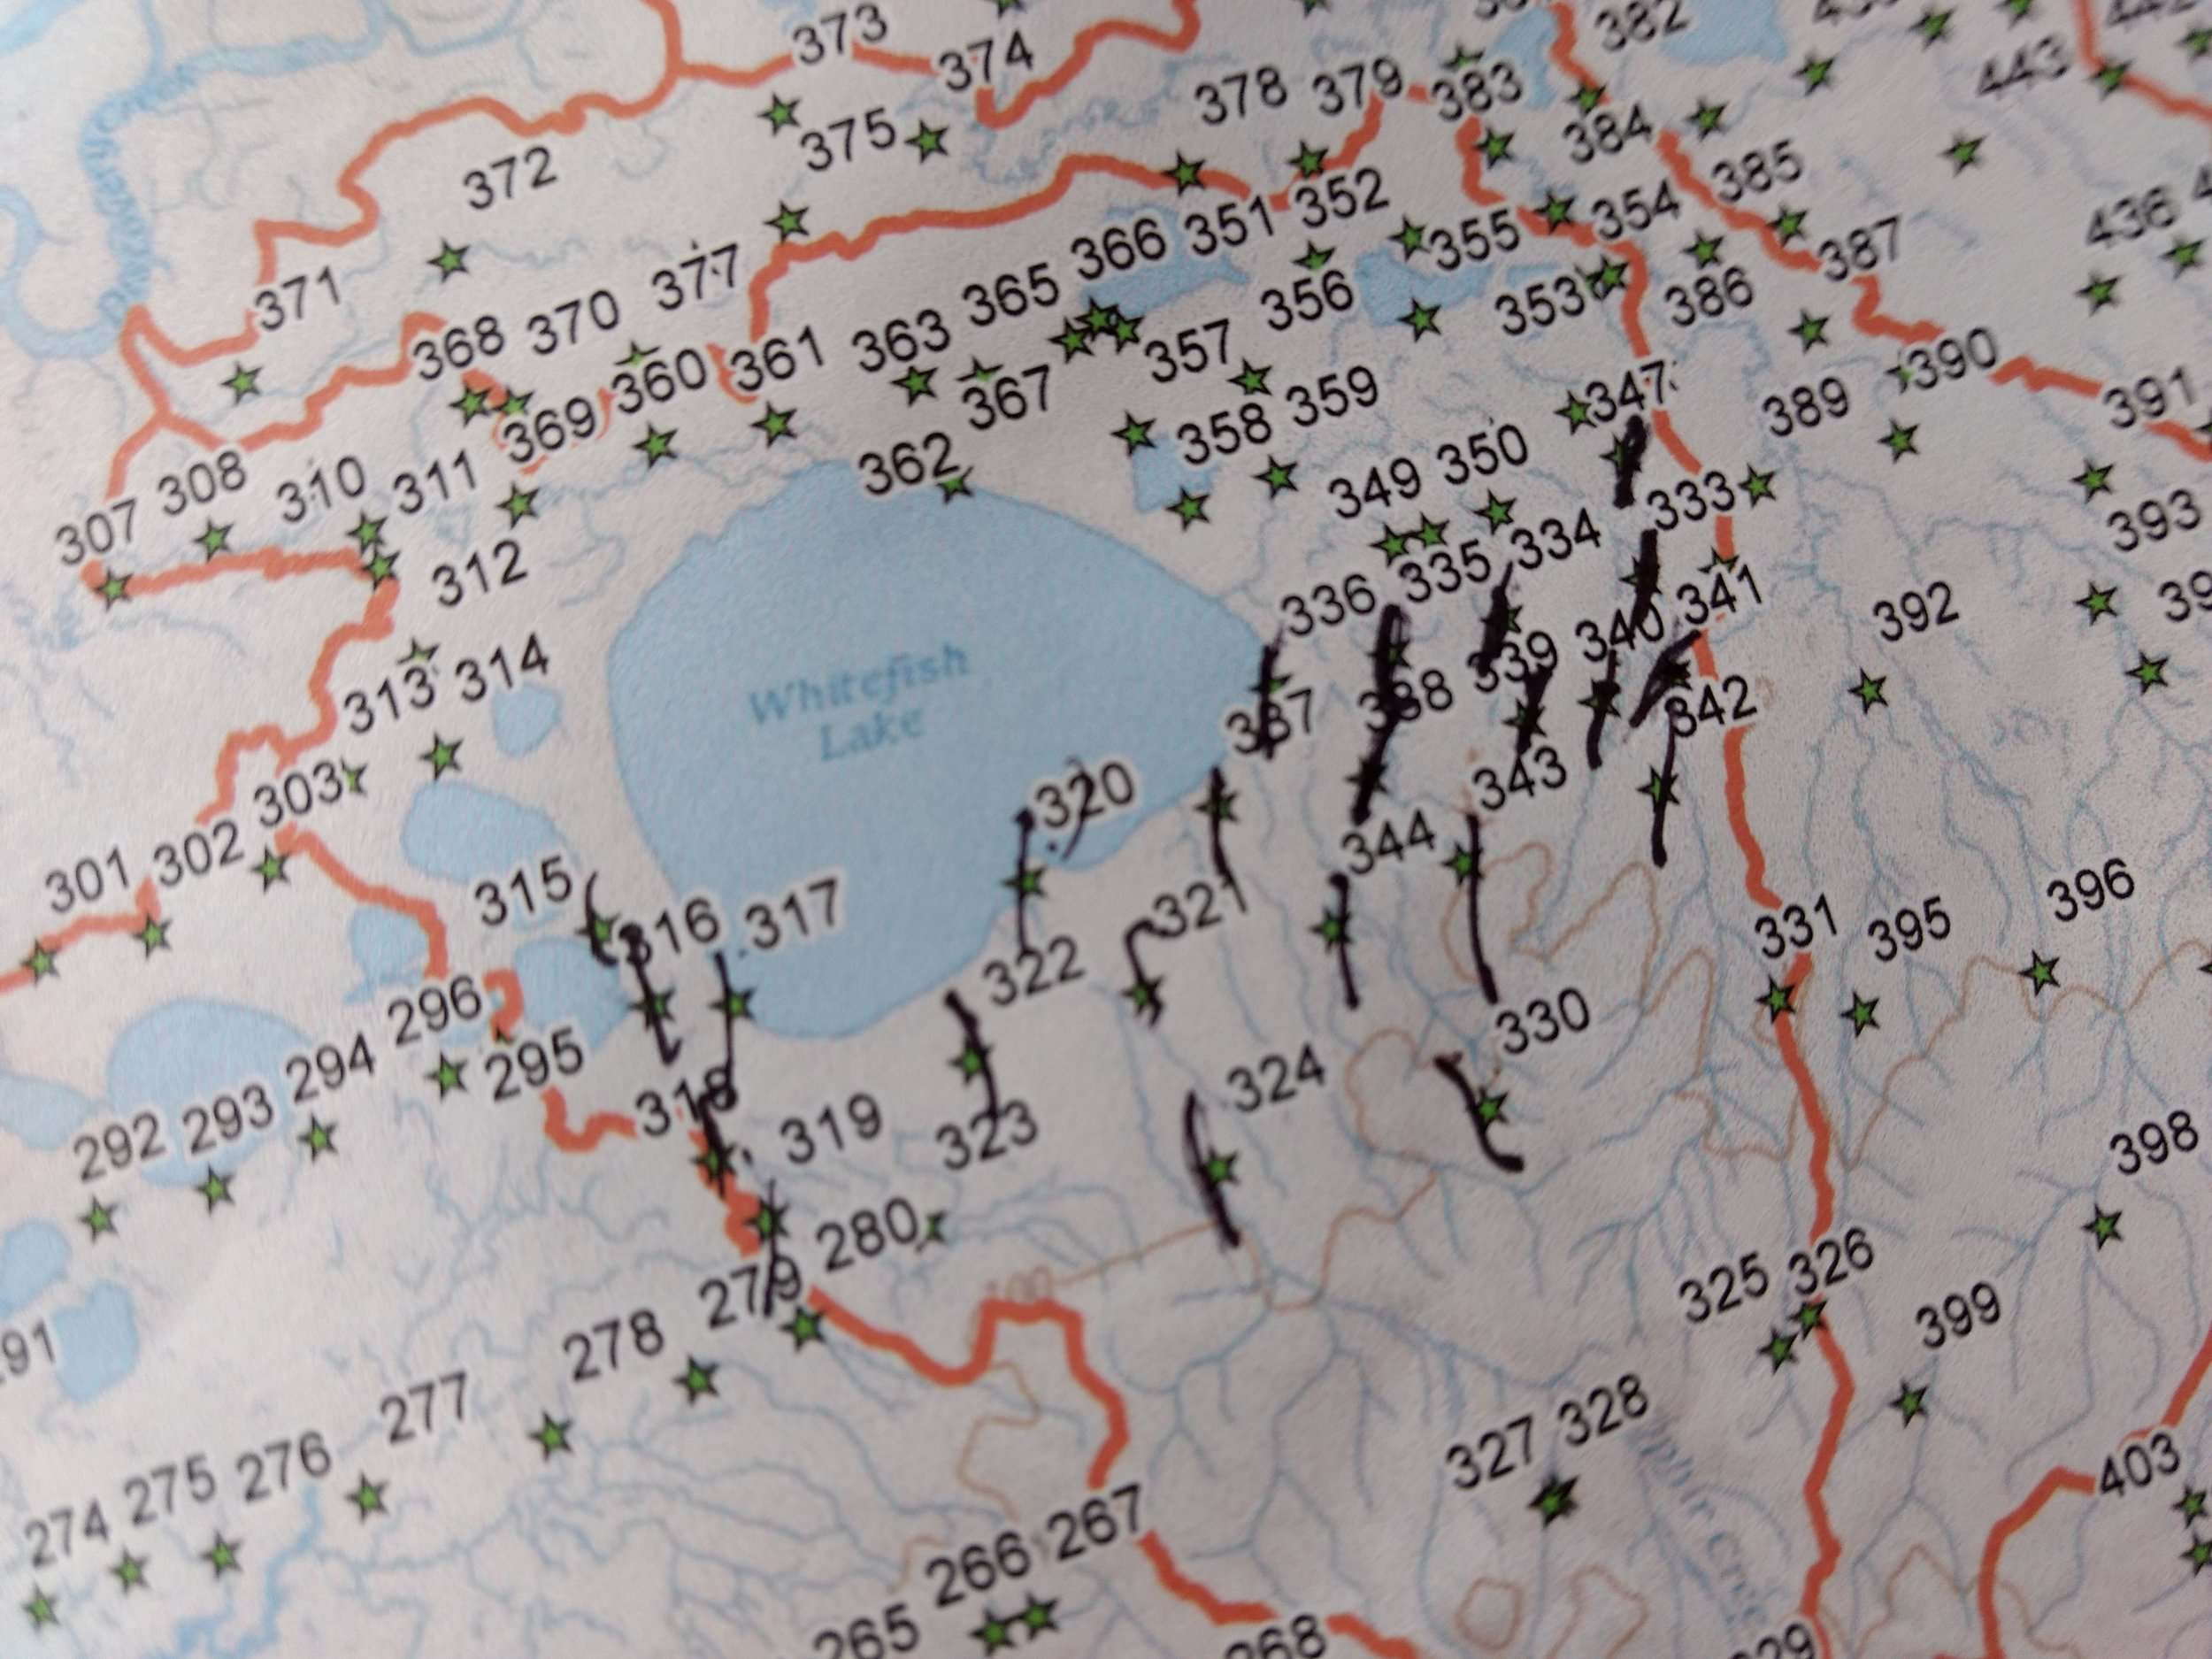 An overview mapped used as flight path planning and inventory of visited sample sites.  Photo Credit: Andy Robertson